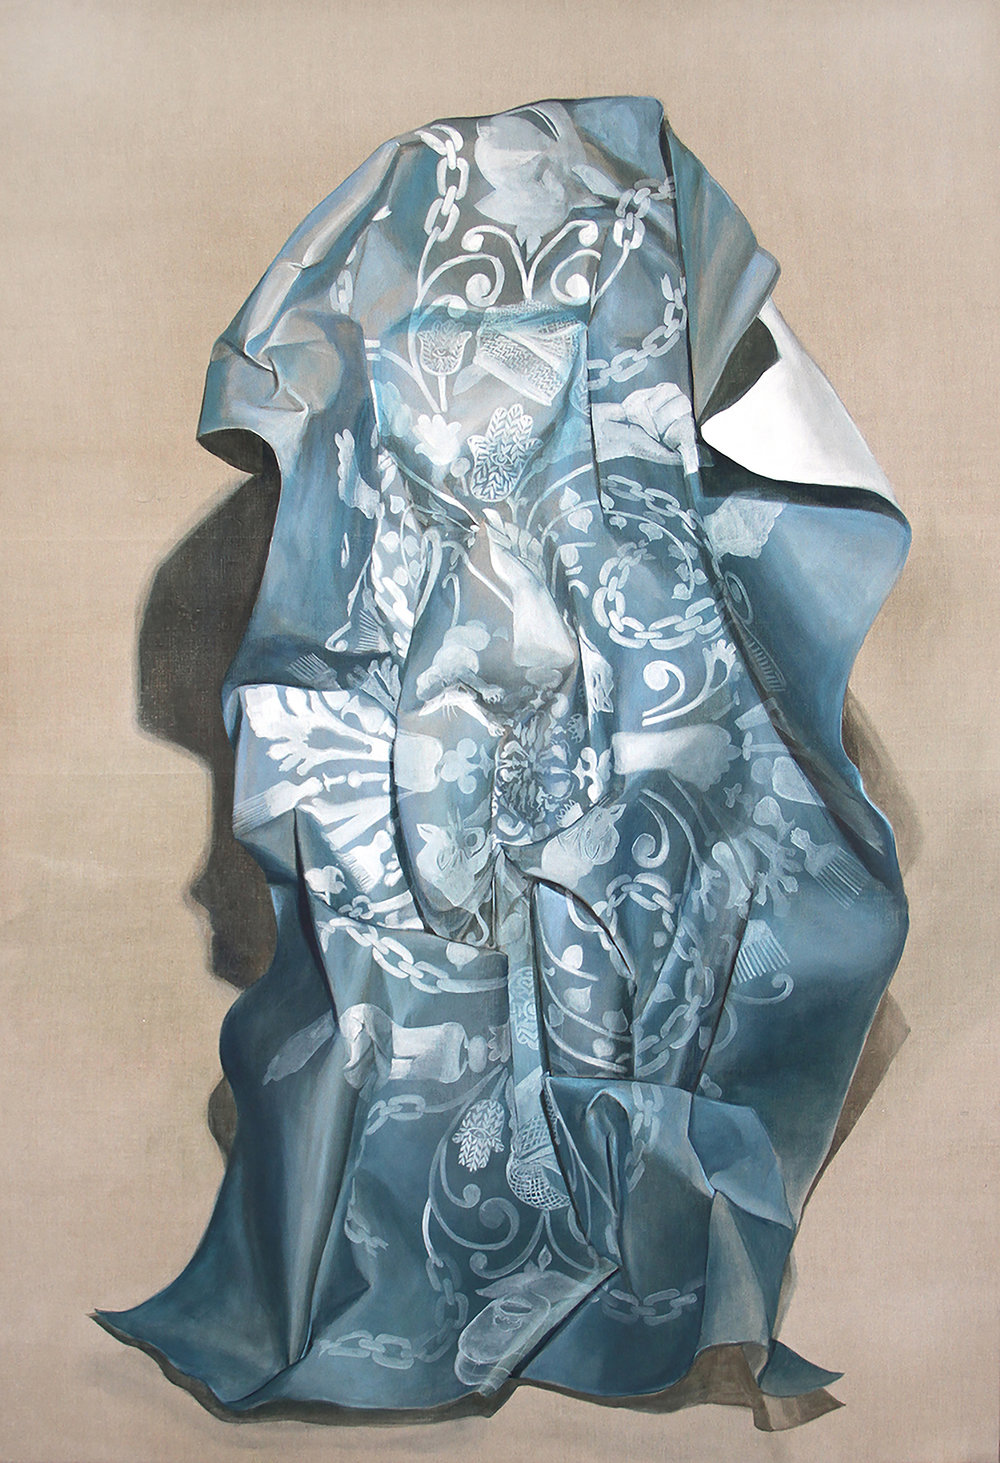 Firelei Báez,  Winged Victory,  2015, Acrylic and ink on linen, 108 x 74 inches (274.3 x 188 cm)